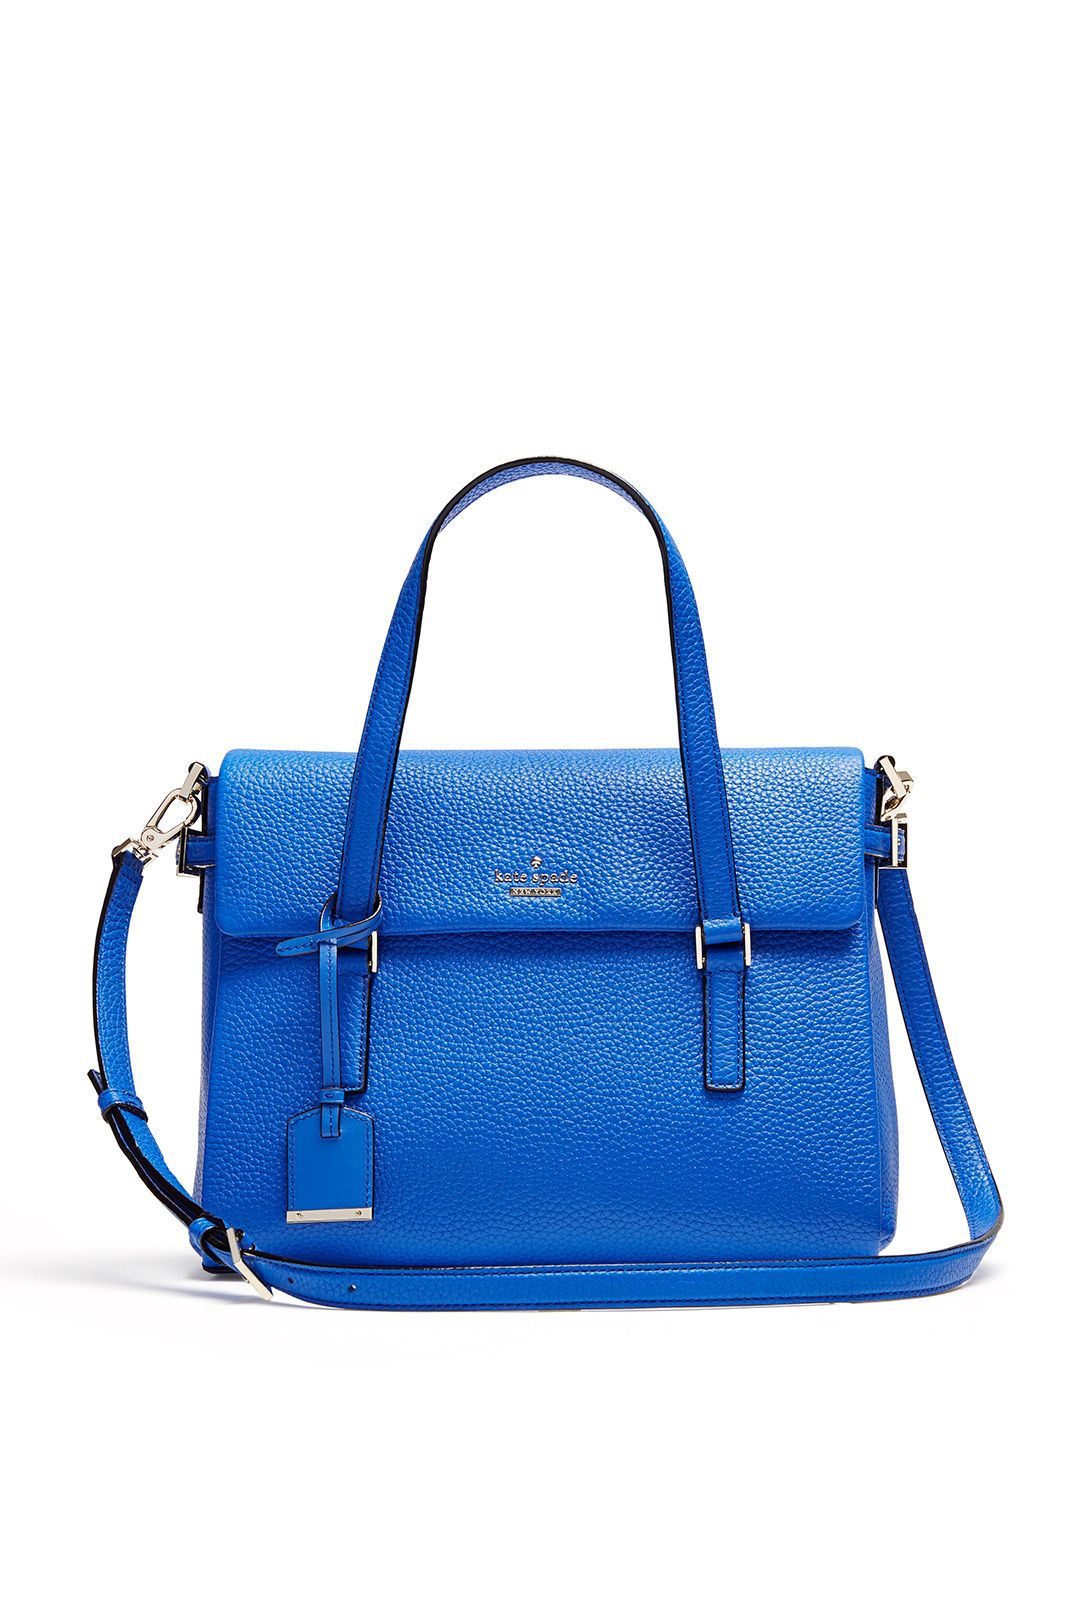 Kate Spade New York Accessories Island Holden Street Small Leslie Bag